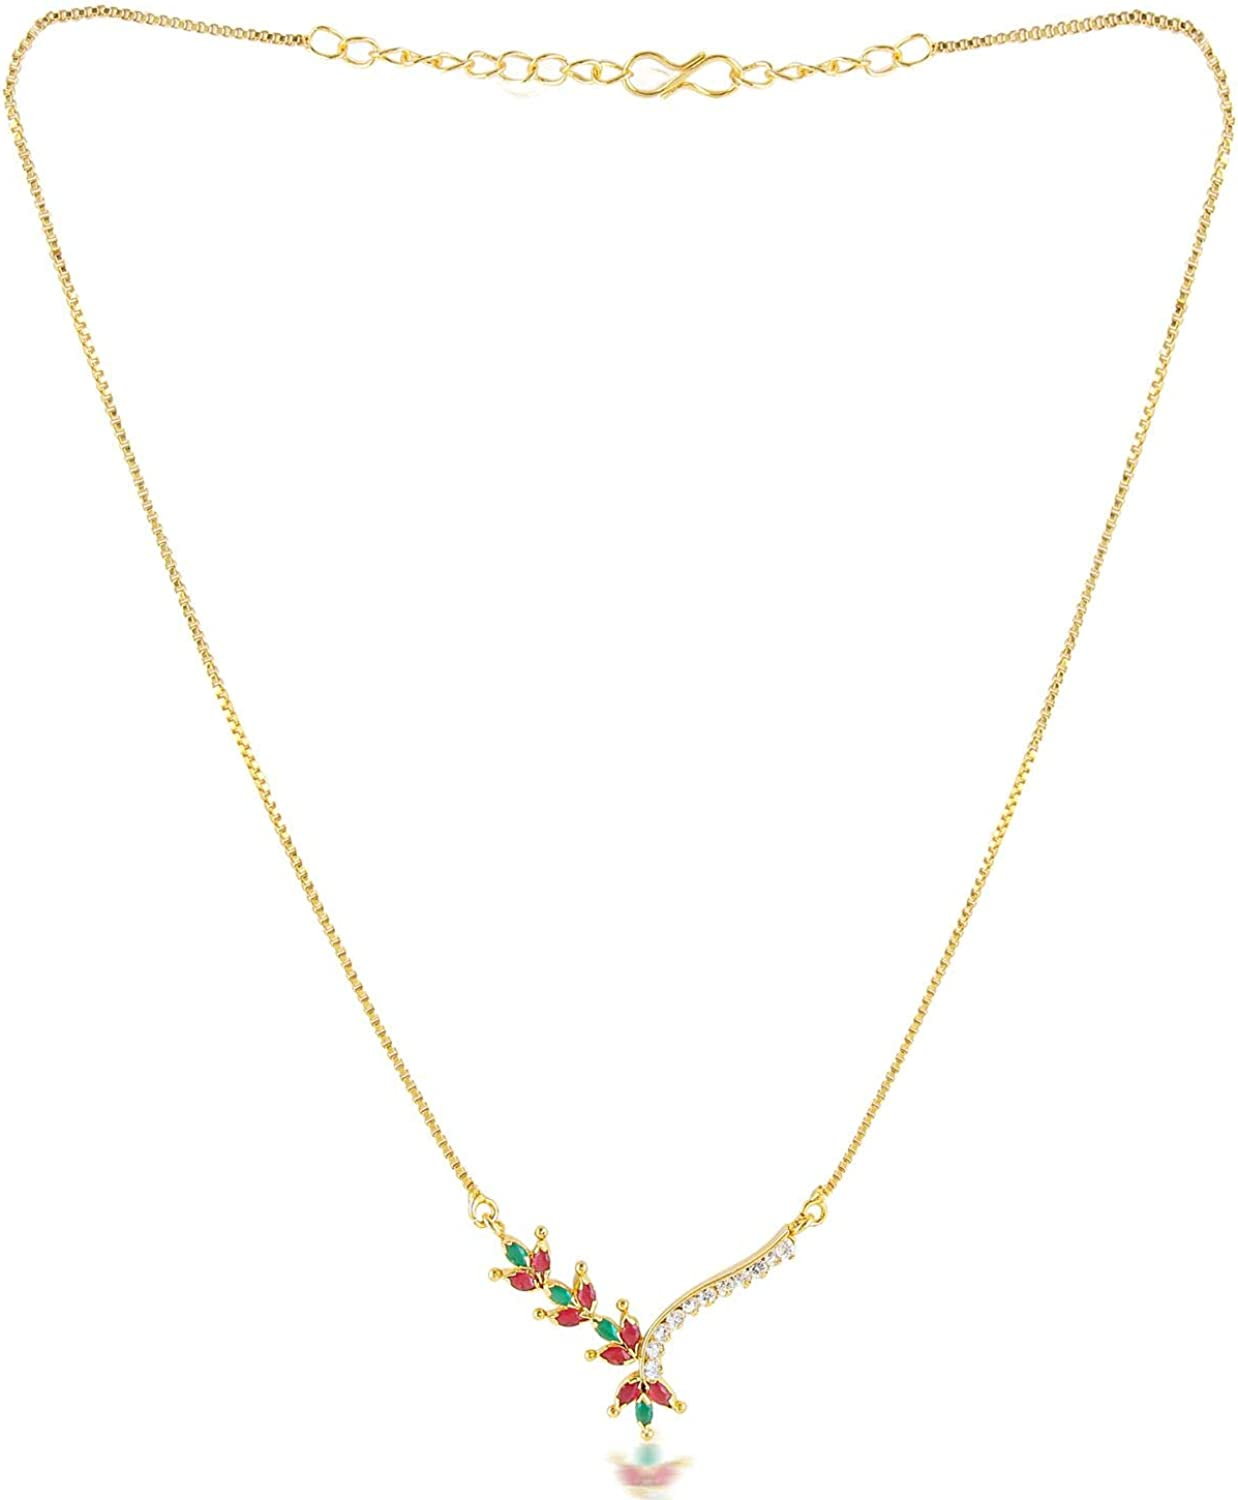 Efulgenz Gold Tone Indian Traditional Pendant Necklace with Chain and Earrings Jewelry for Girls/Women